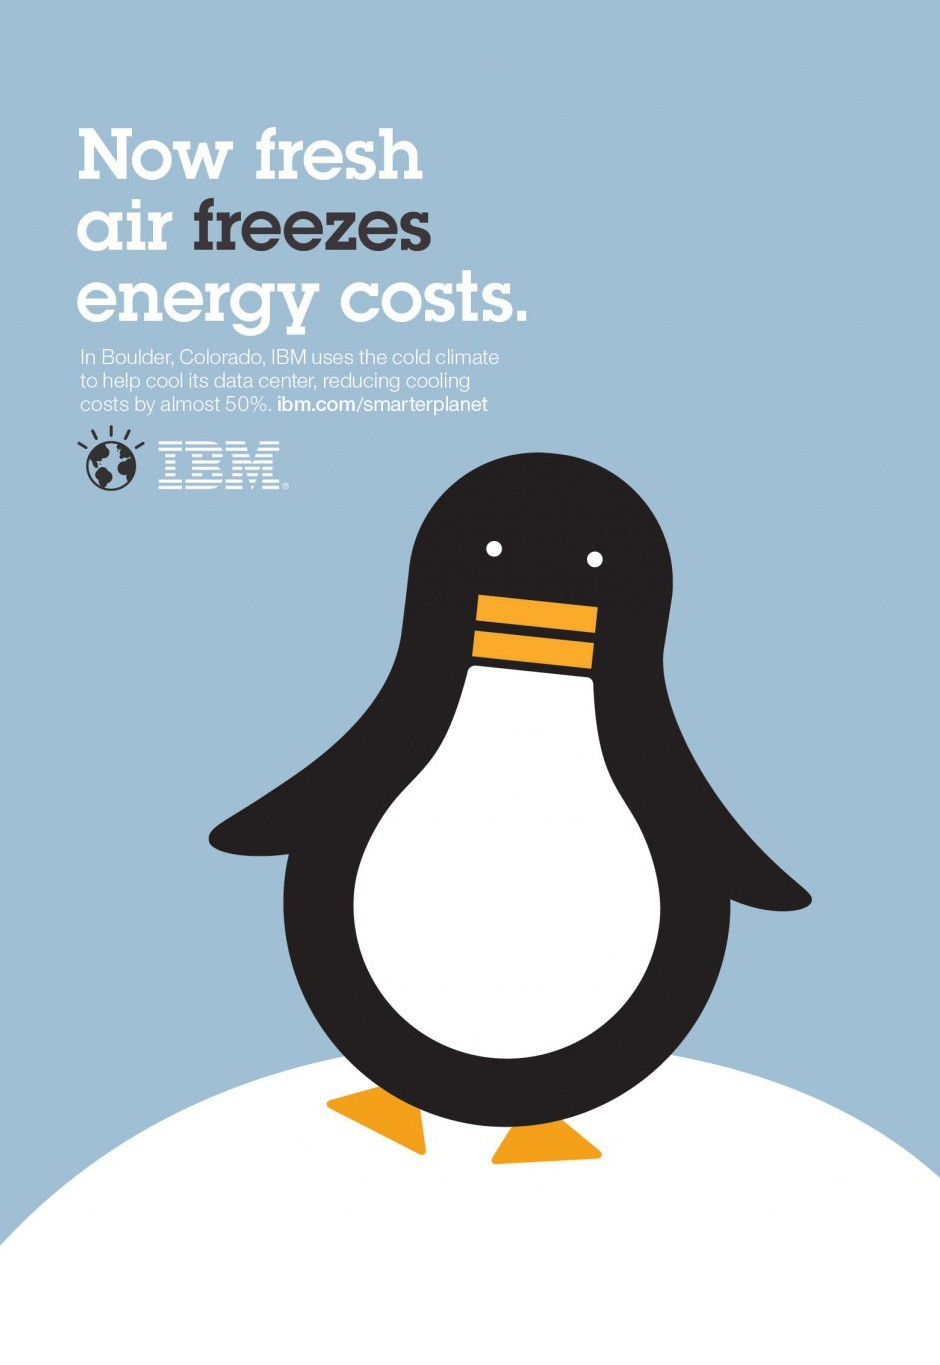 Eric Otley   IBM Smarter Planet Campaign   2008-2009   The image is playful. It uses a light bulb to make the belly and beak of the penguin. Also, simple, but effective use of typography ties the image and text together.   The use of typography and the use of white space. The combination of two images is a nice touch. It's designed for a purpose.